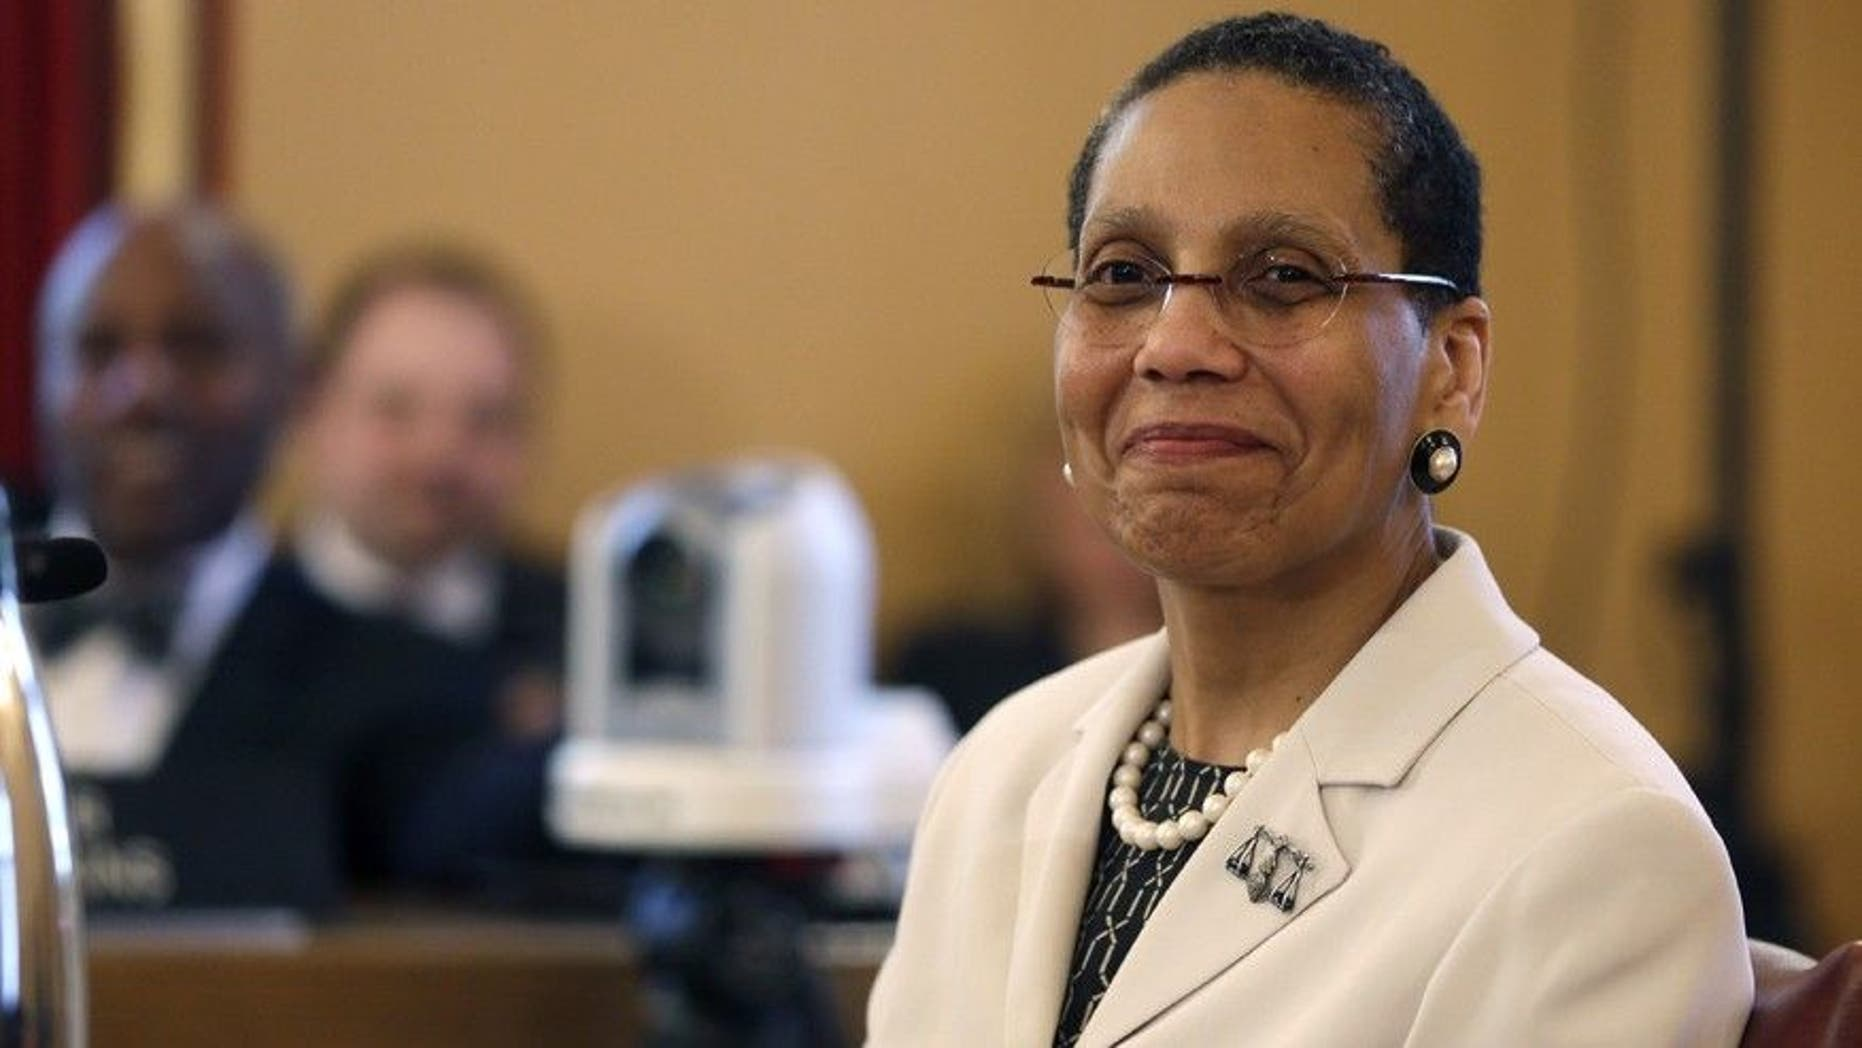 Judge Sheila Abdus-Salaam was found dead on the bank of the Hudson River on Wednesday.